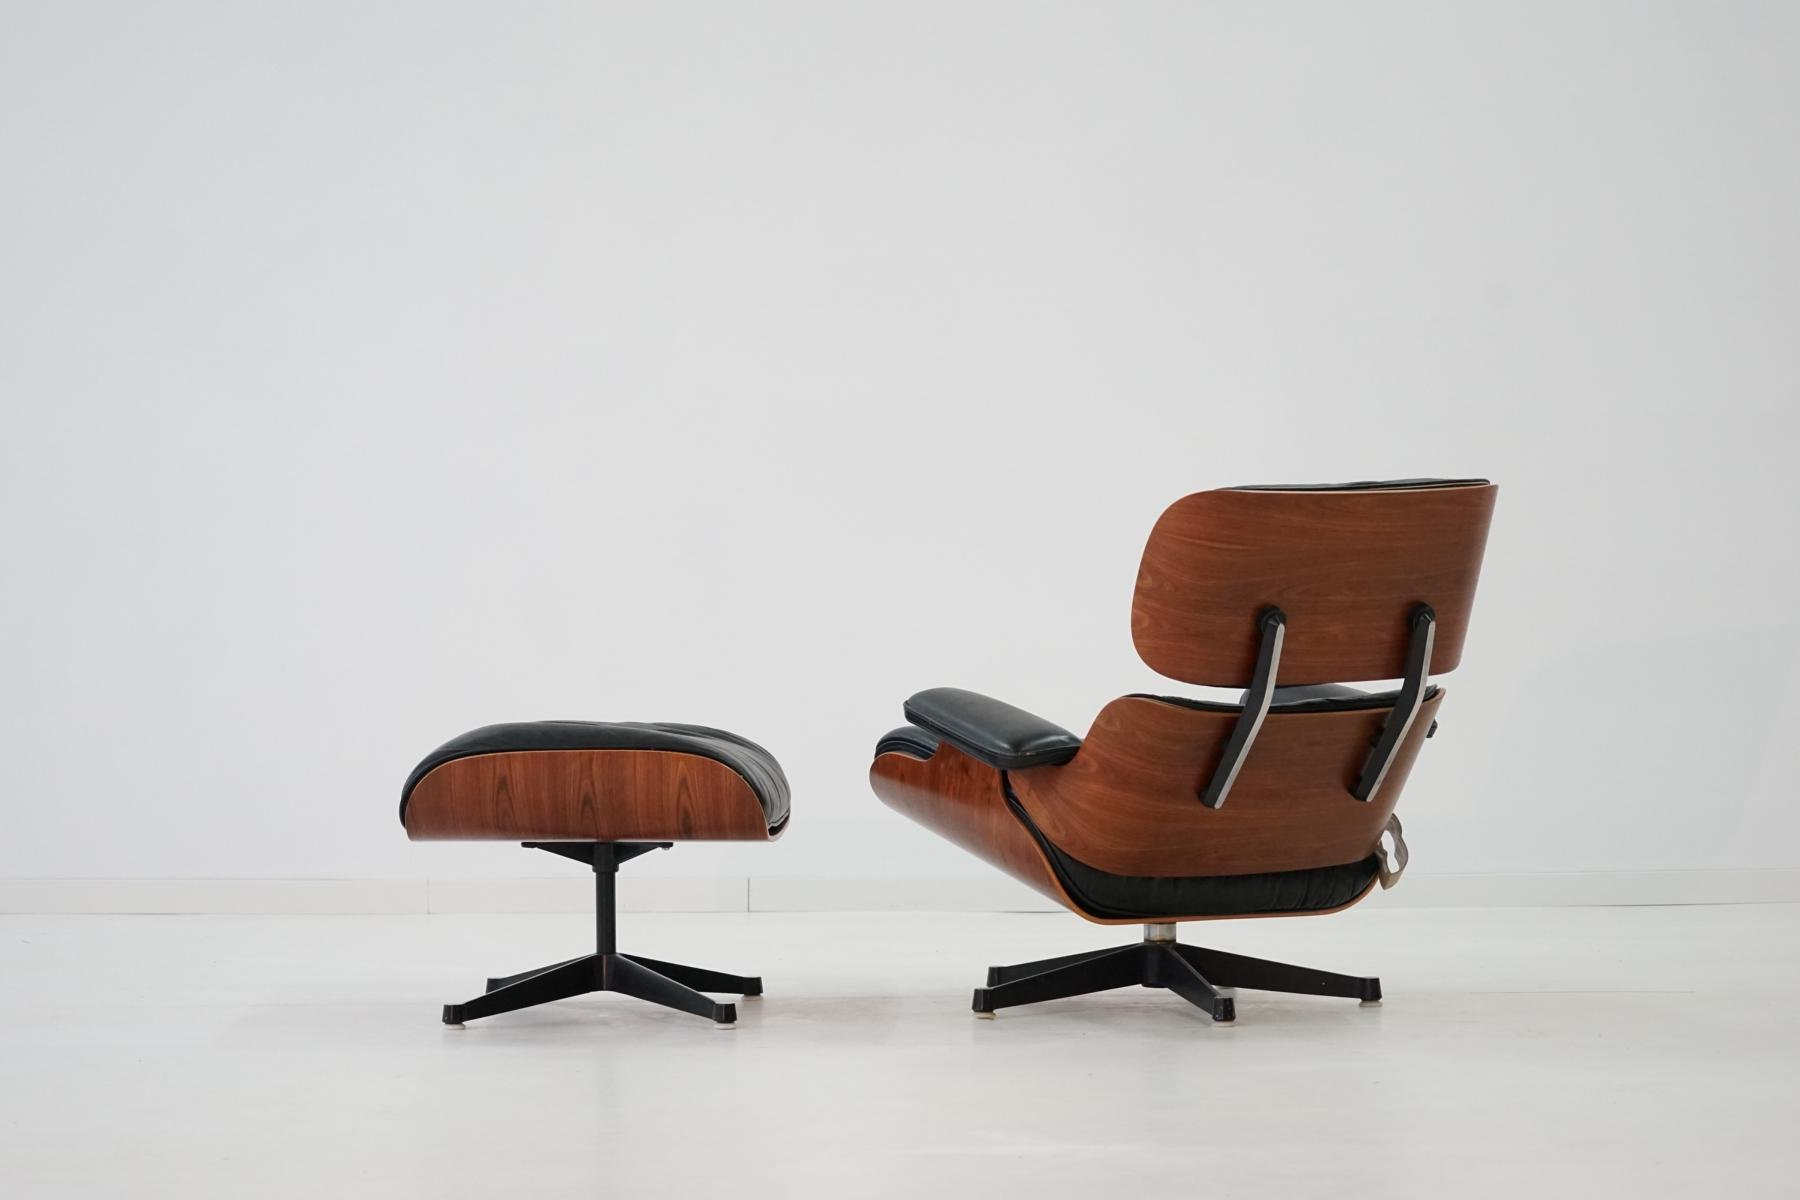 vintage rosewood lounge chair ottoman by charles ray eames for